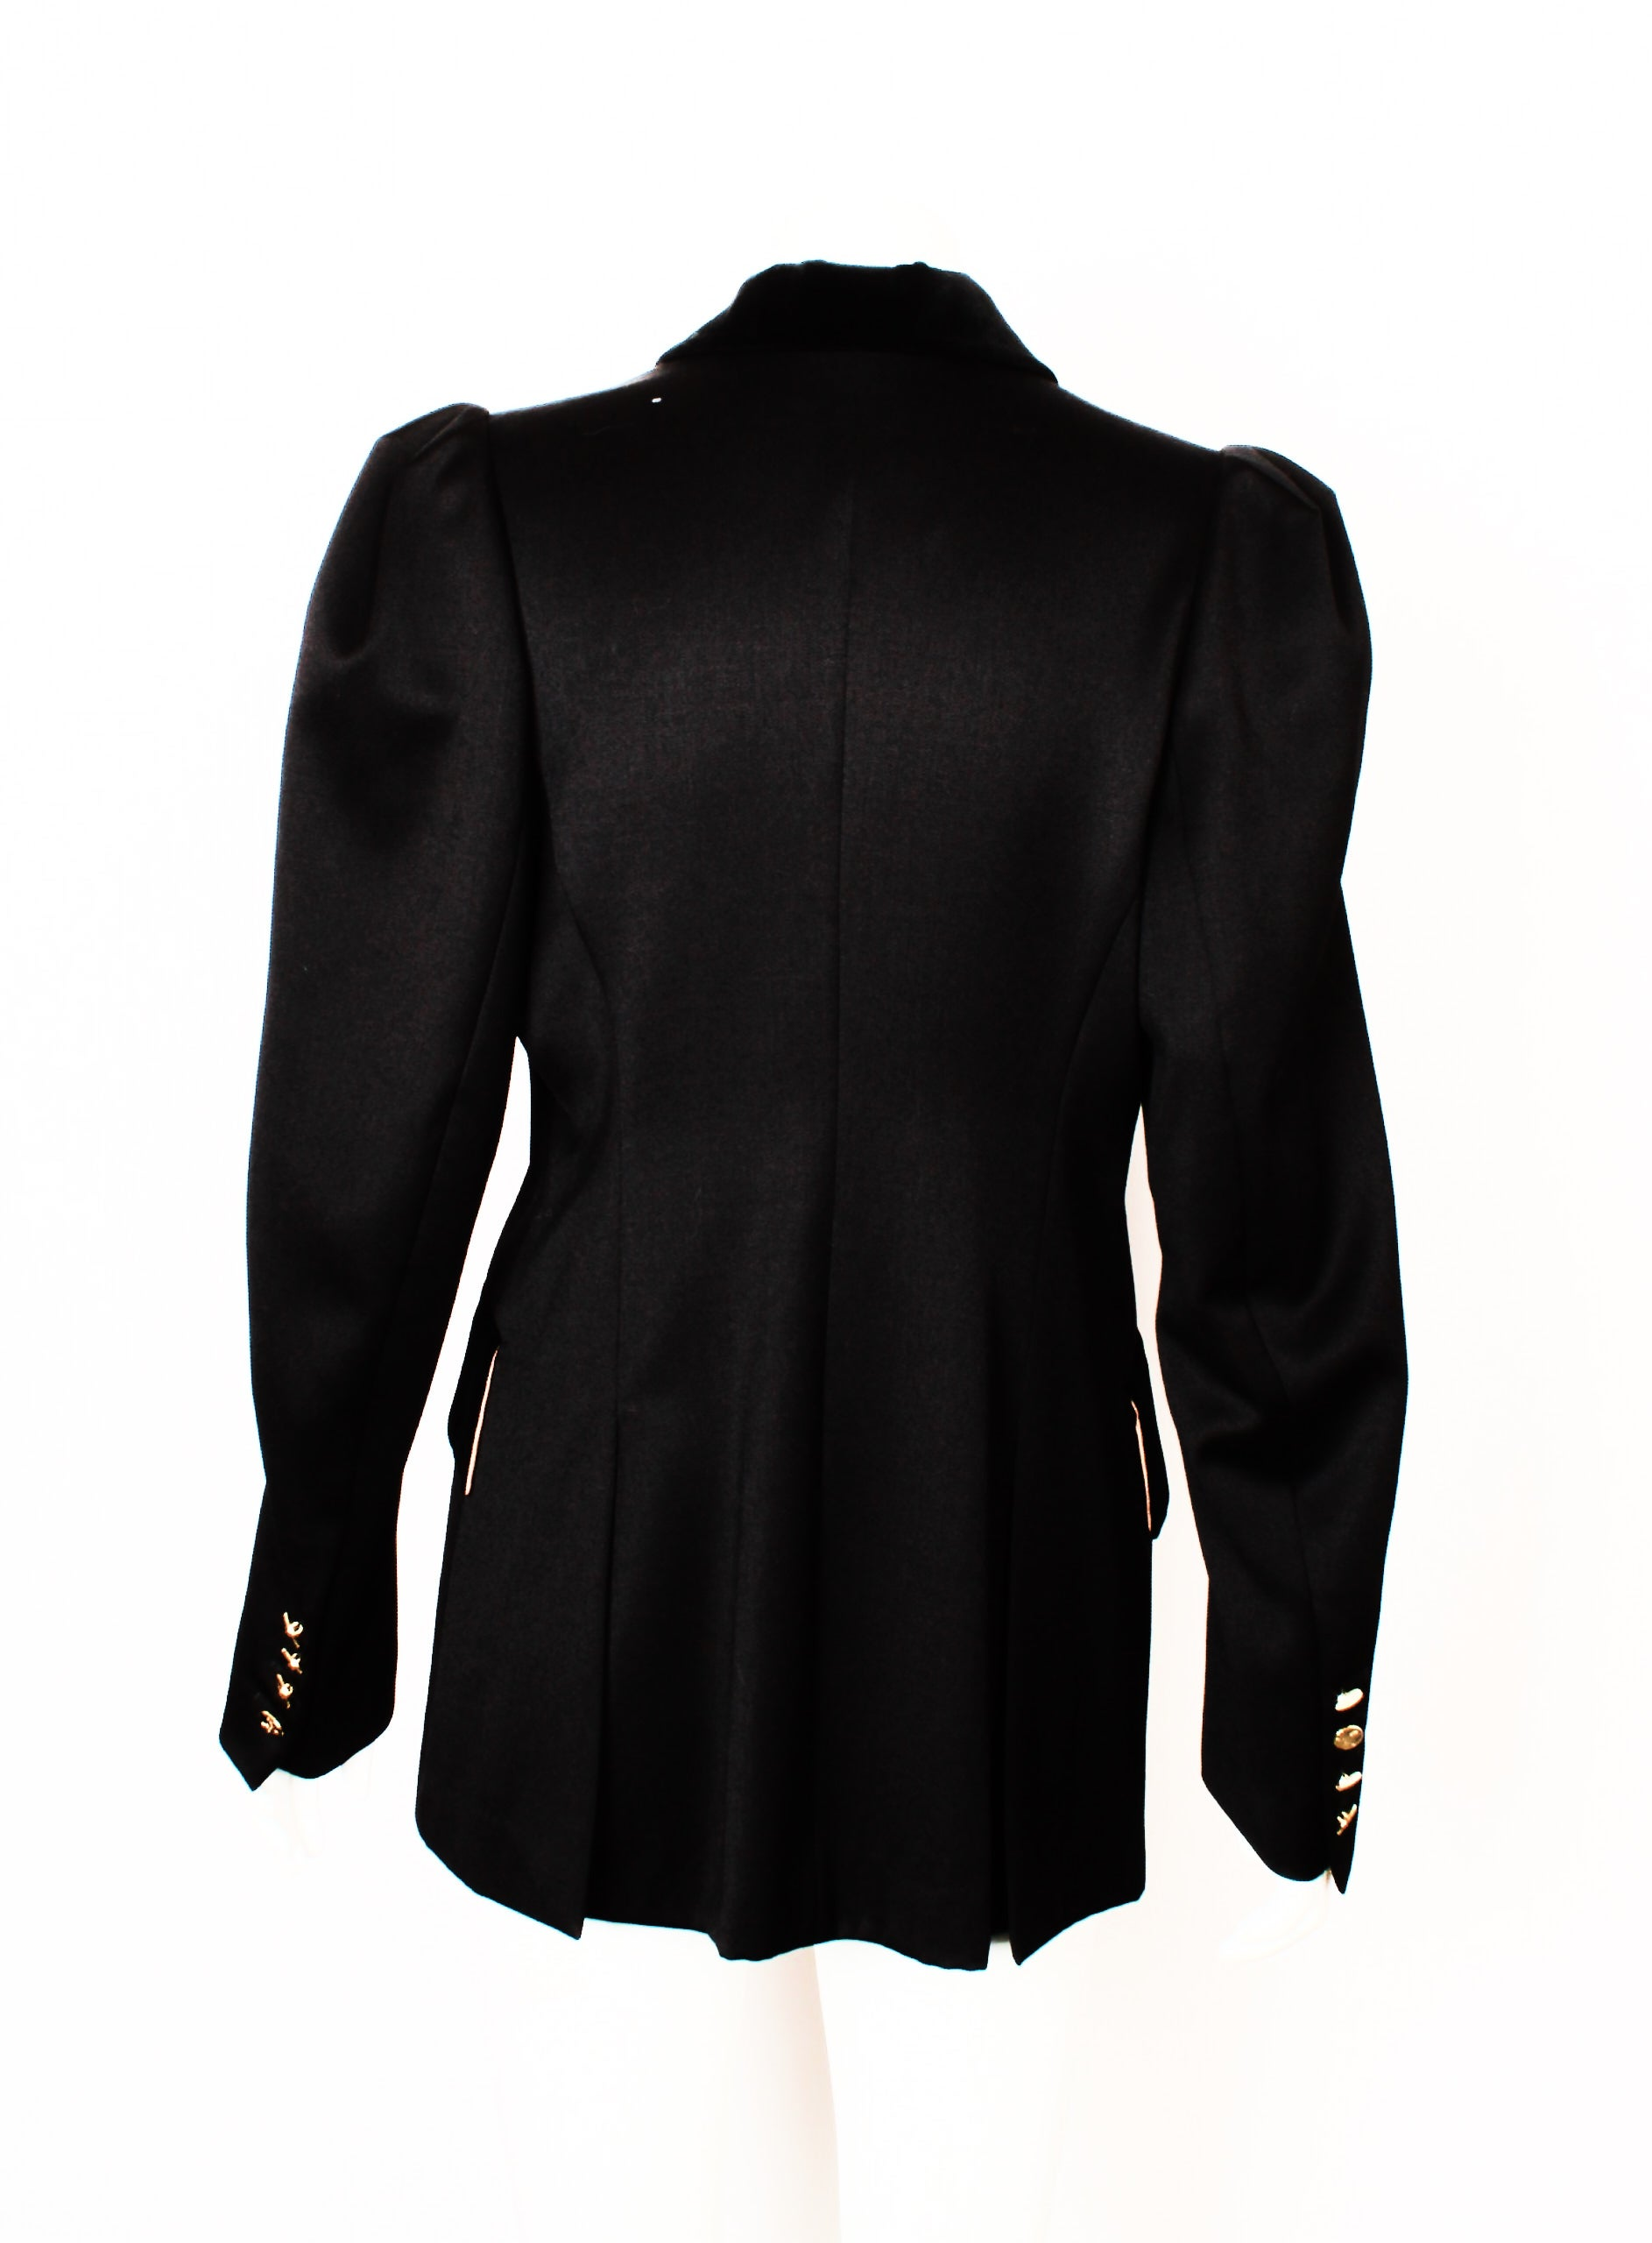 1a5a5a12bb6d Vivienne Westwood Black Double Breasted Jacket